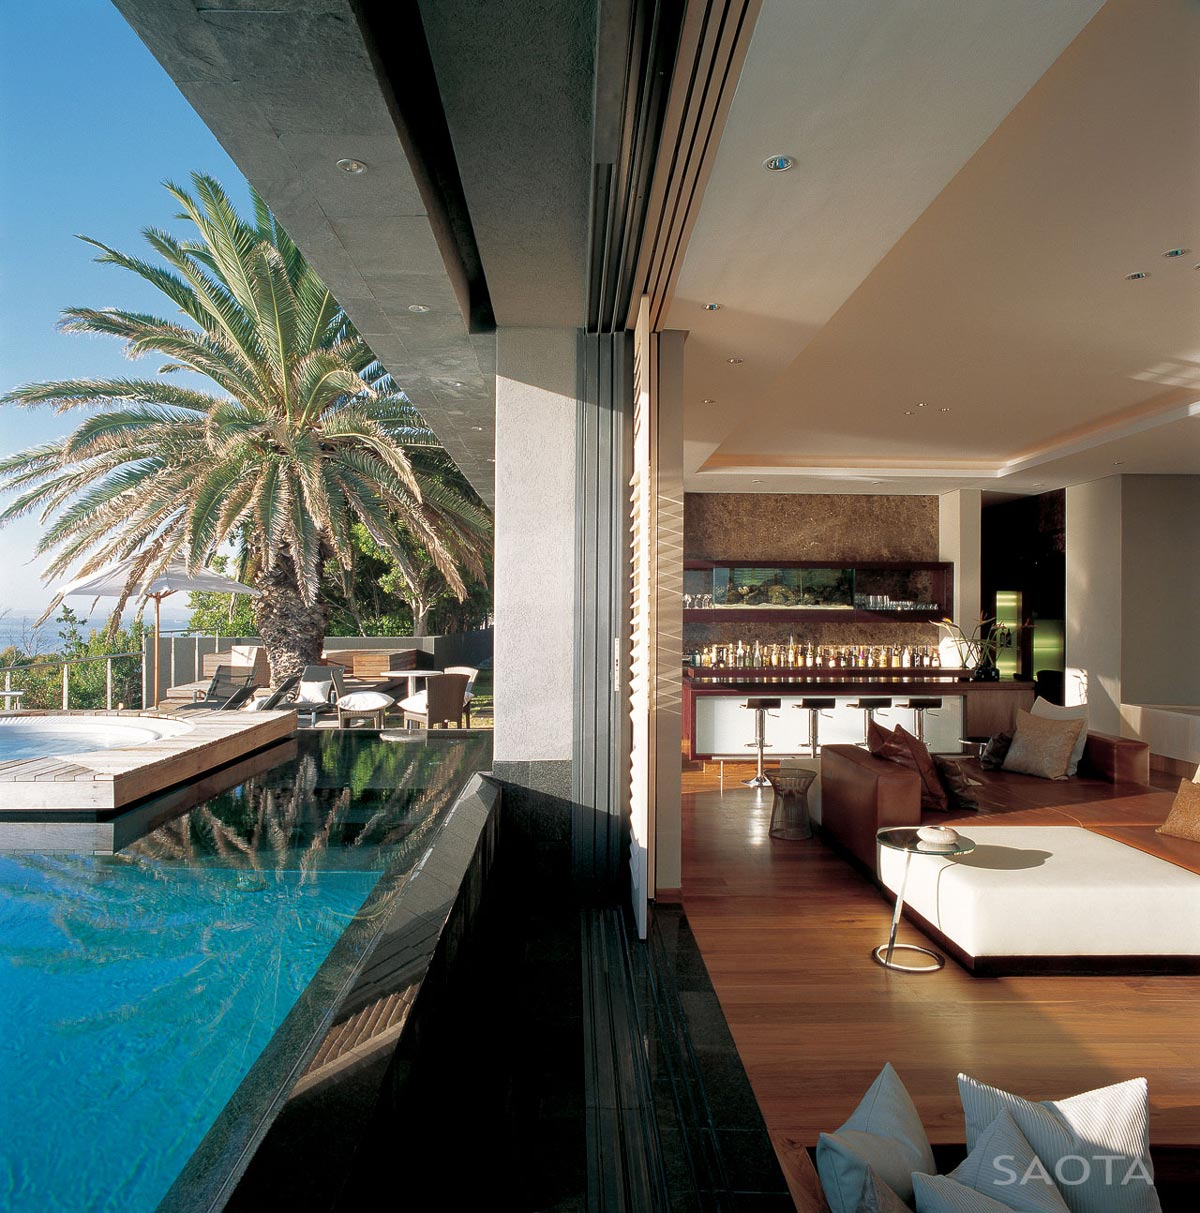 Pool, Patio Doors, Bar, Living Space, St Leon 10 in Cape Town, South Africa by SAOTA and Antoni Associates